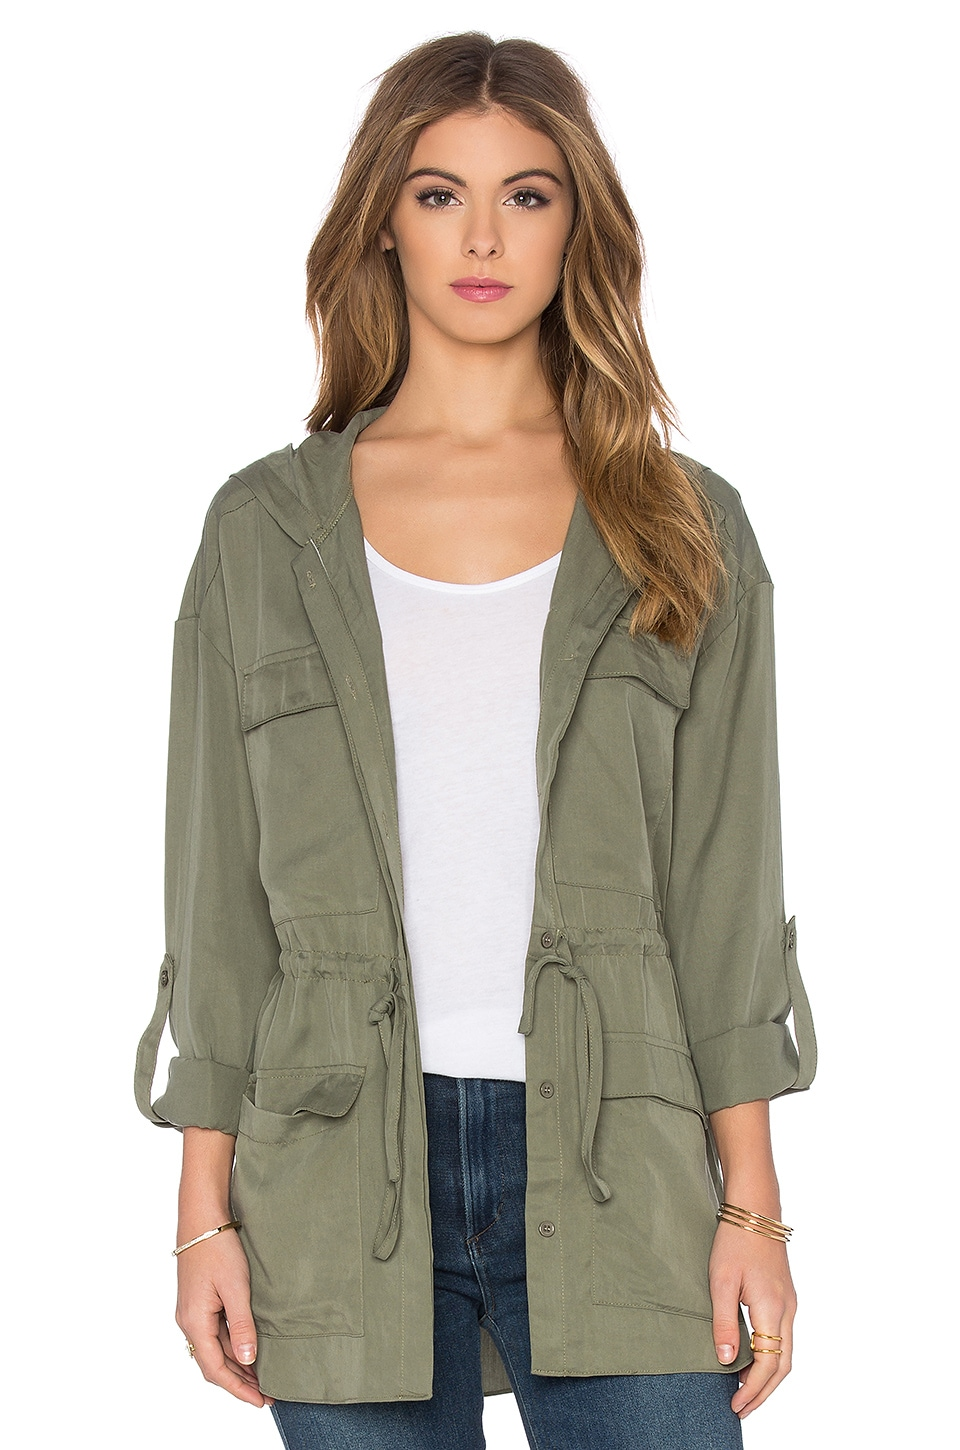 Toby Heart Ginger Hooded Anorak Jacket in Khaki